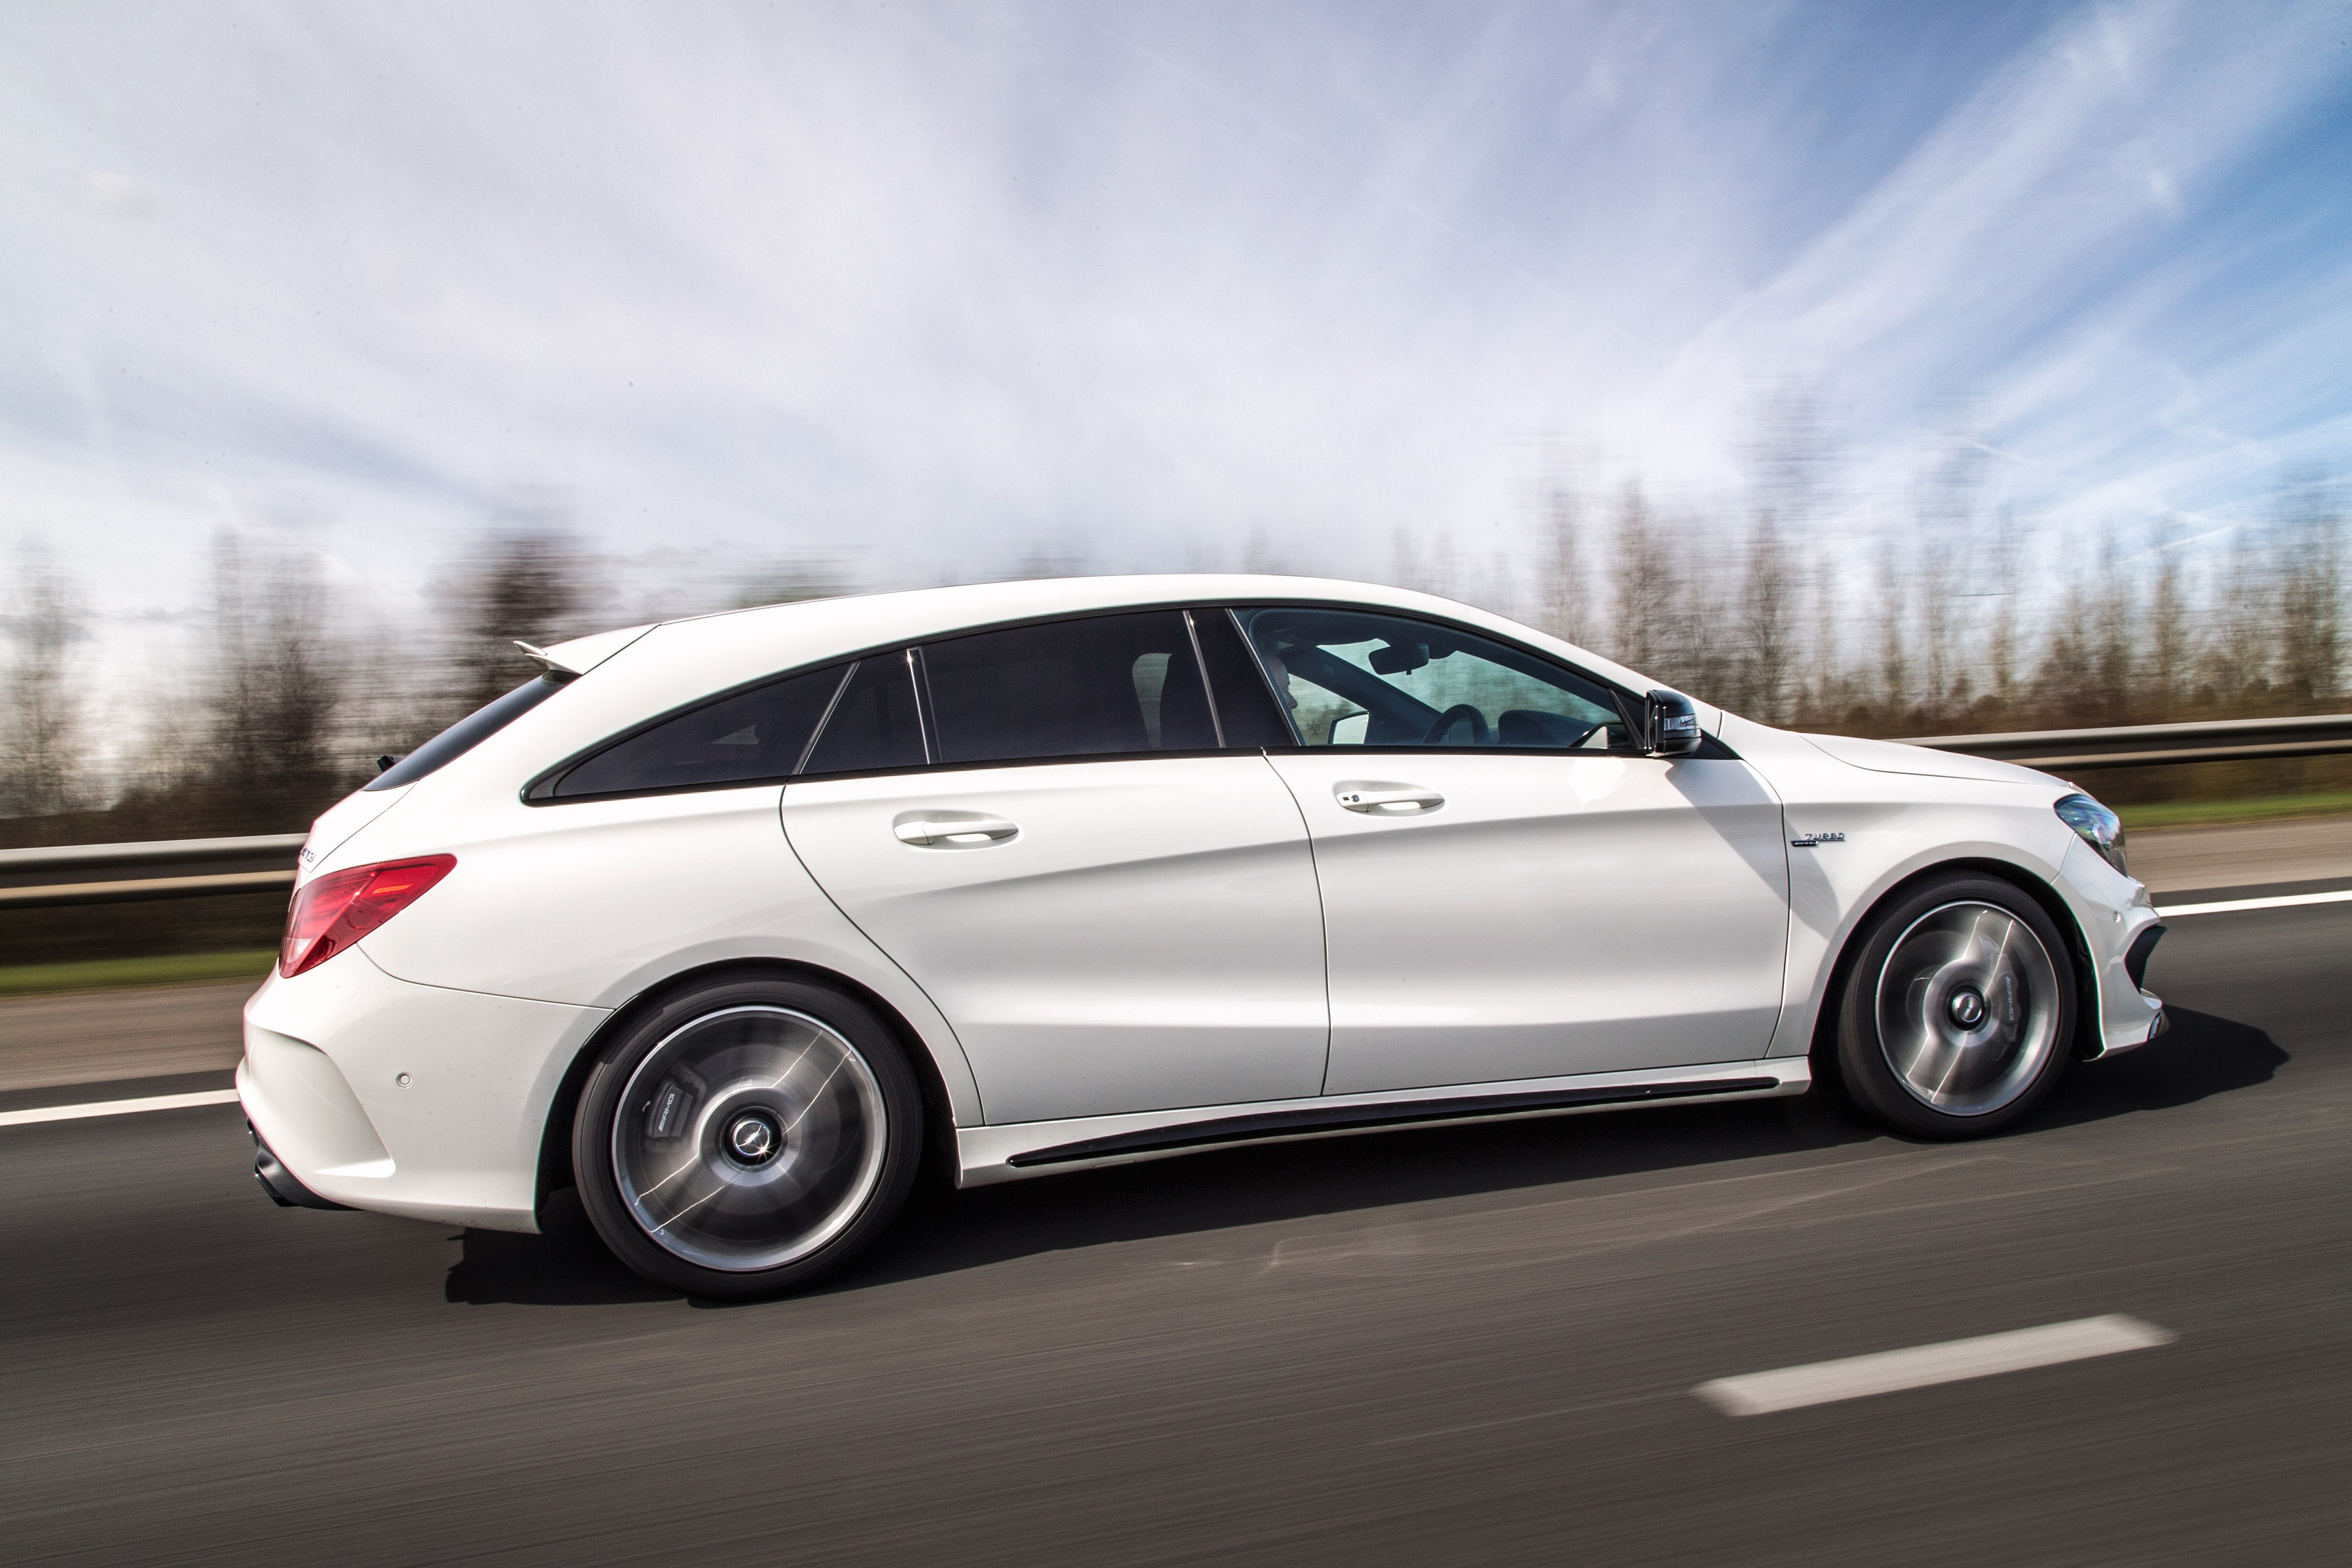 Mercedes CLA Shooting Brake (X117) modern 2016